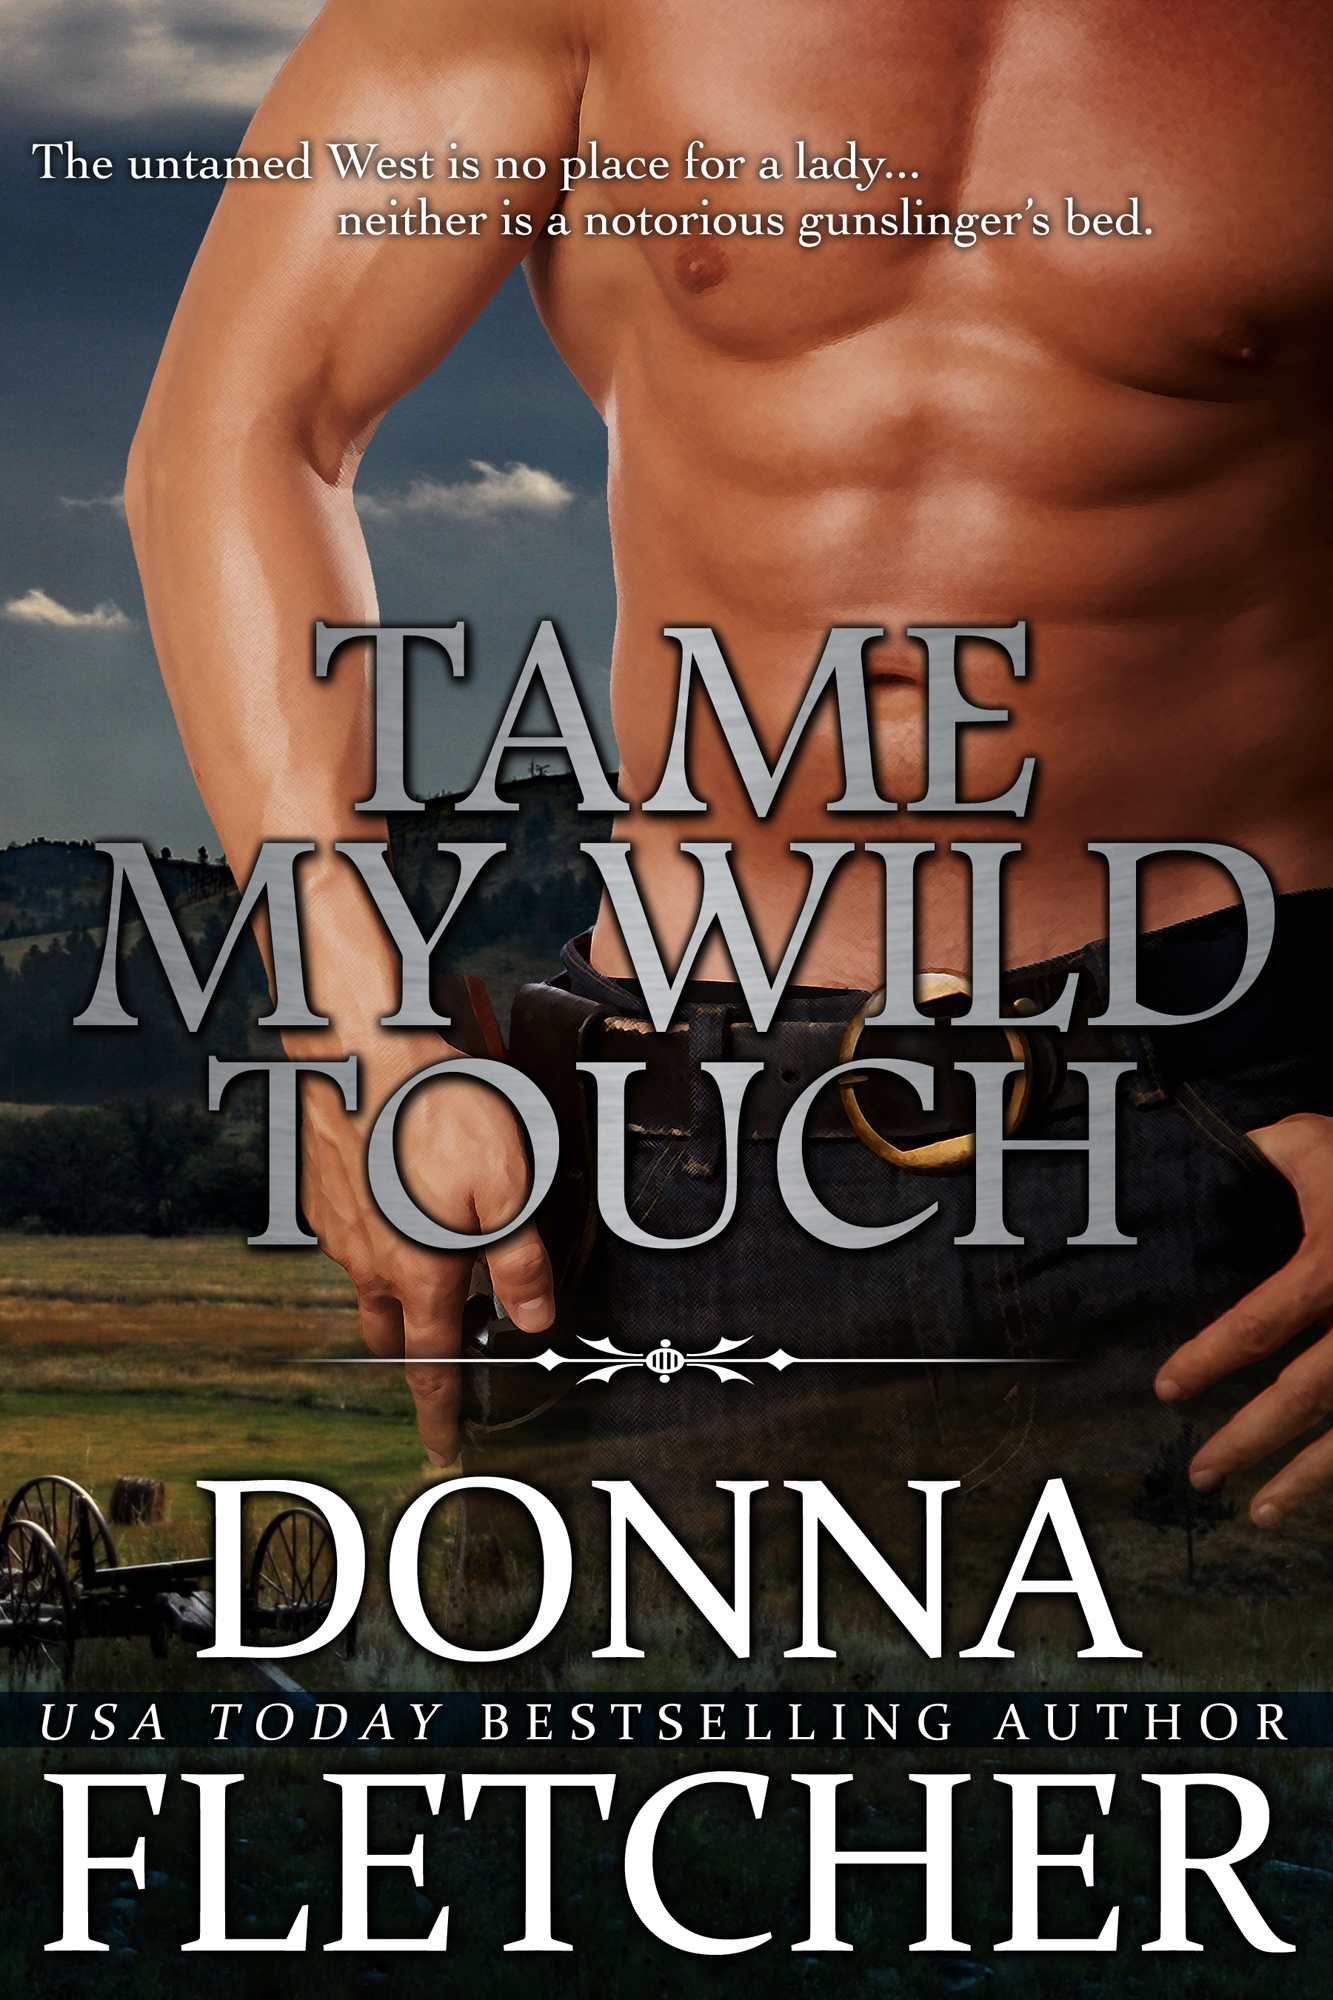 Donna Fletcher - Tame My Wild Touch